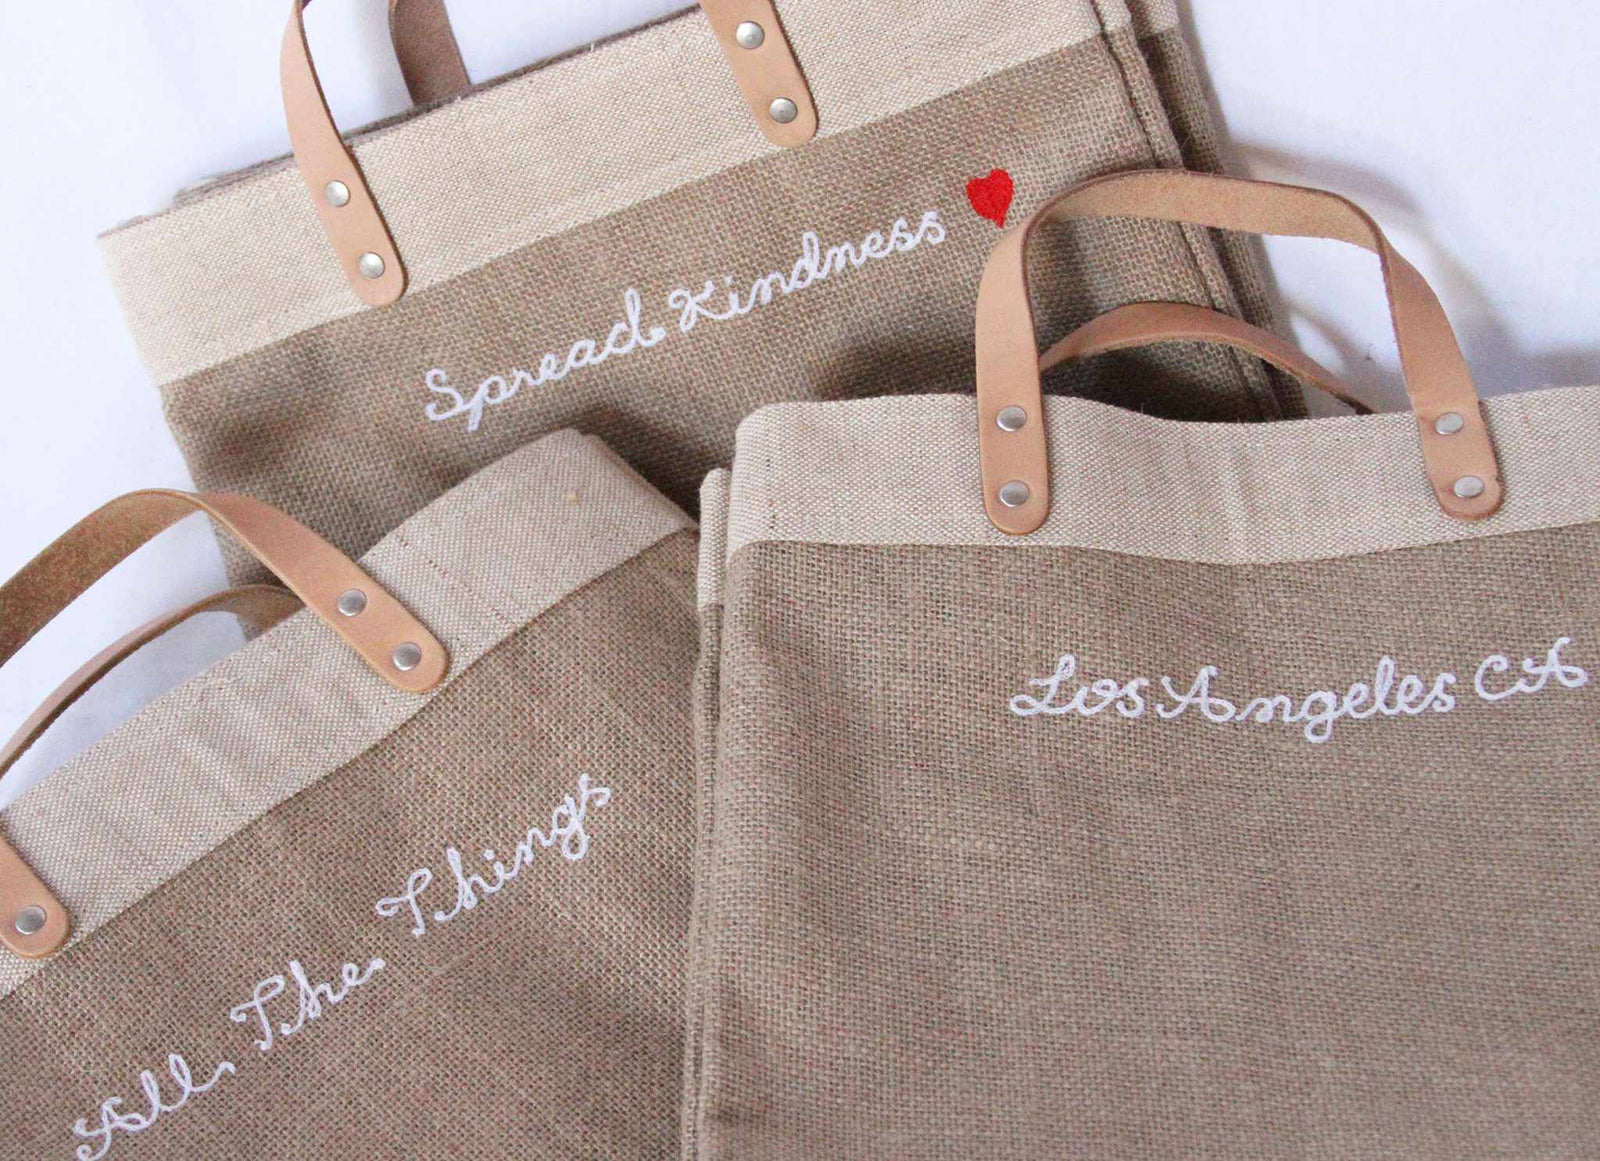 Customizable Embroidered Market Bag